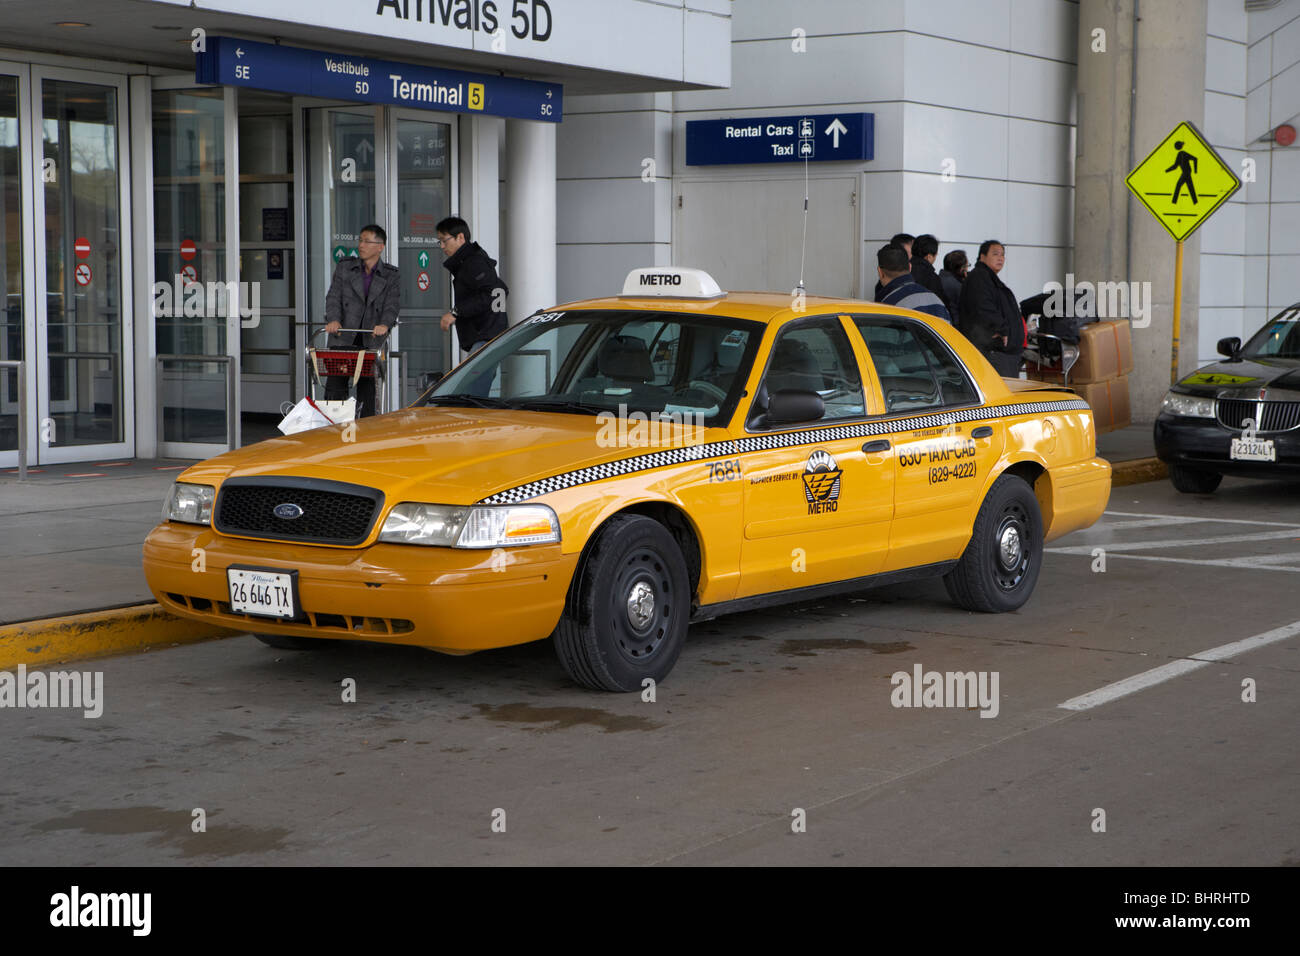 Chicago Yellow Cab Stock Photos & Chicago Yellow Cab Stock Images